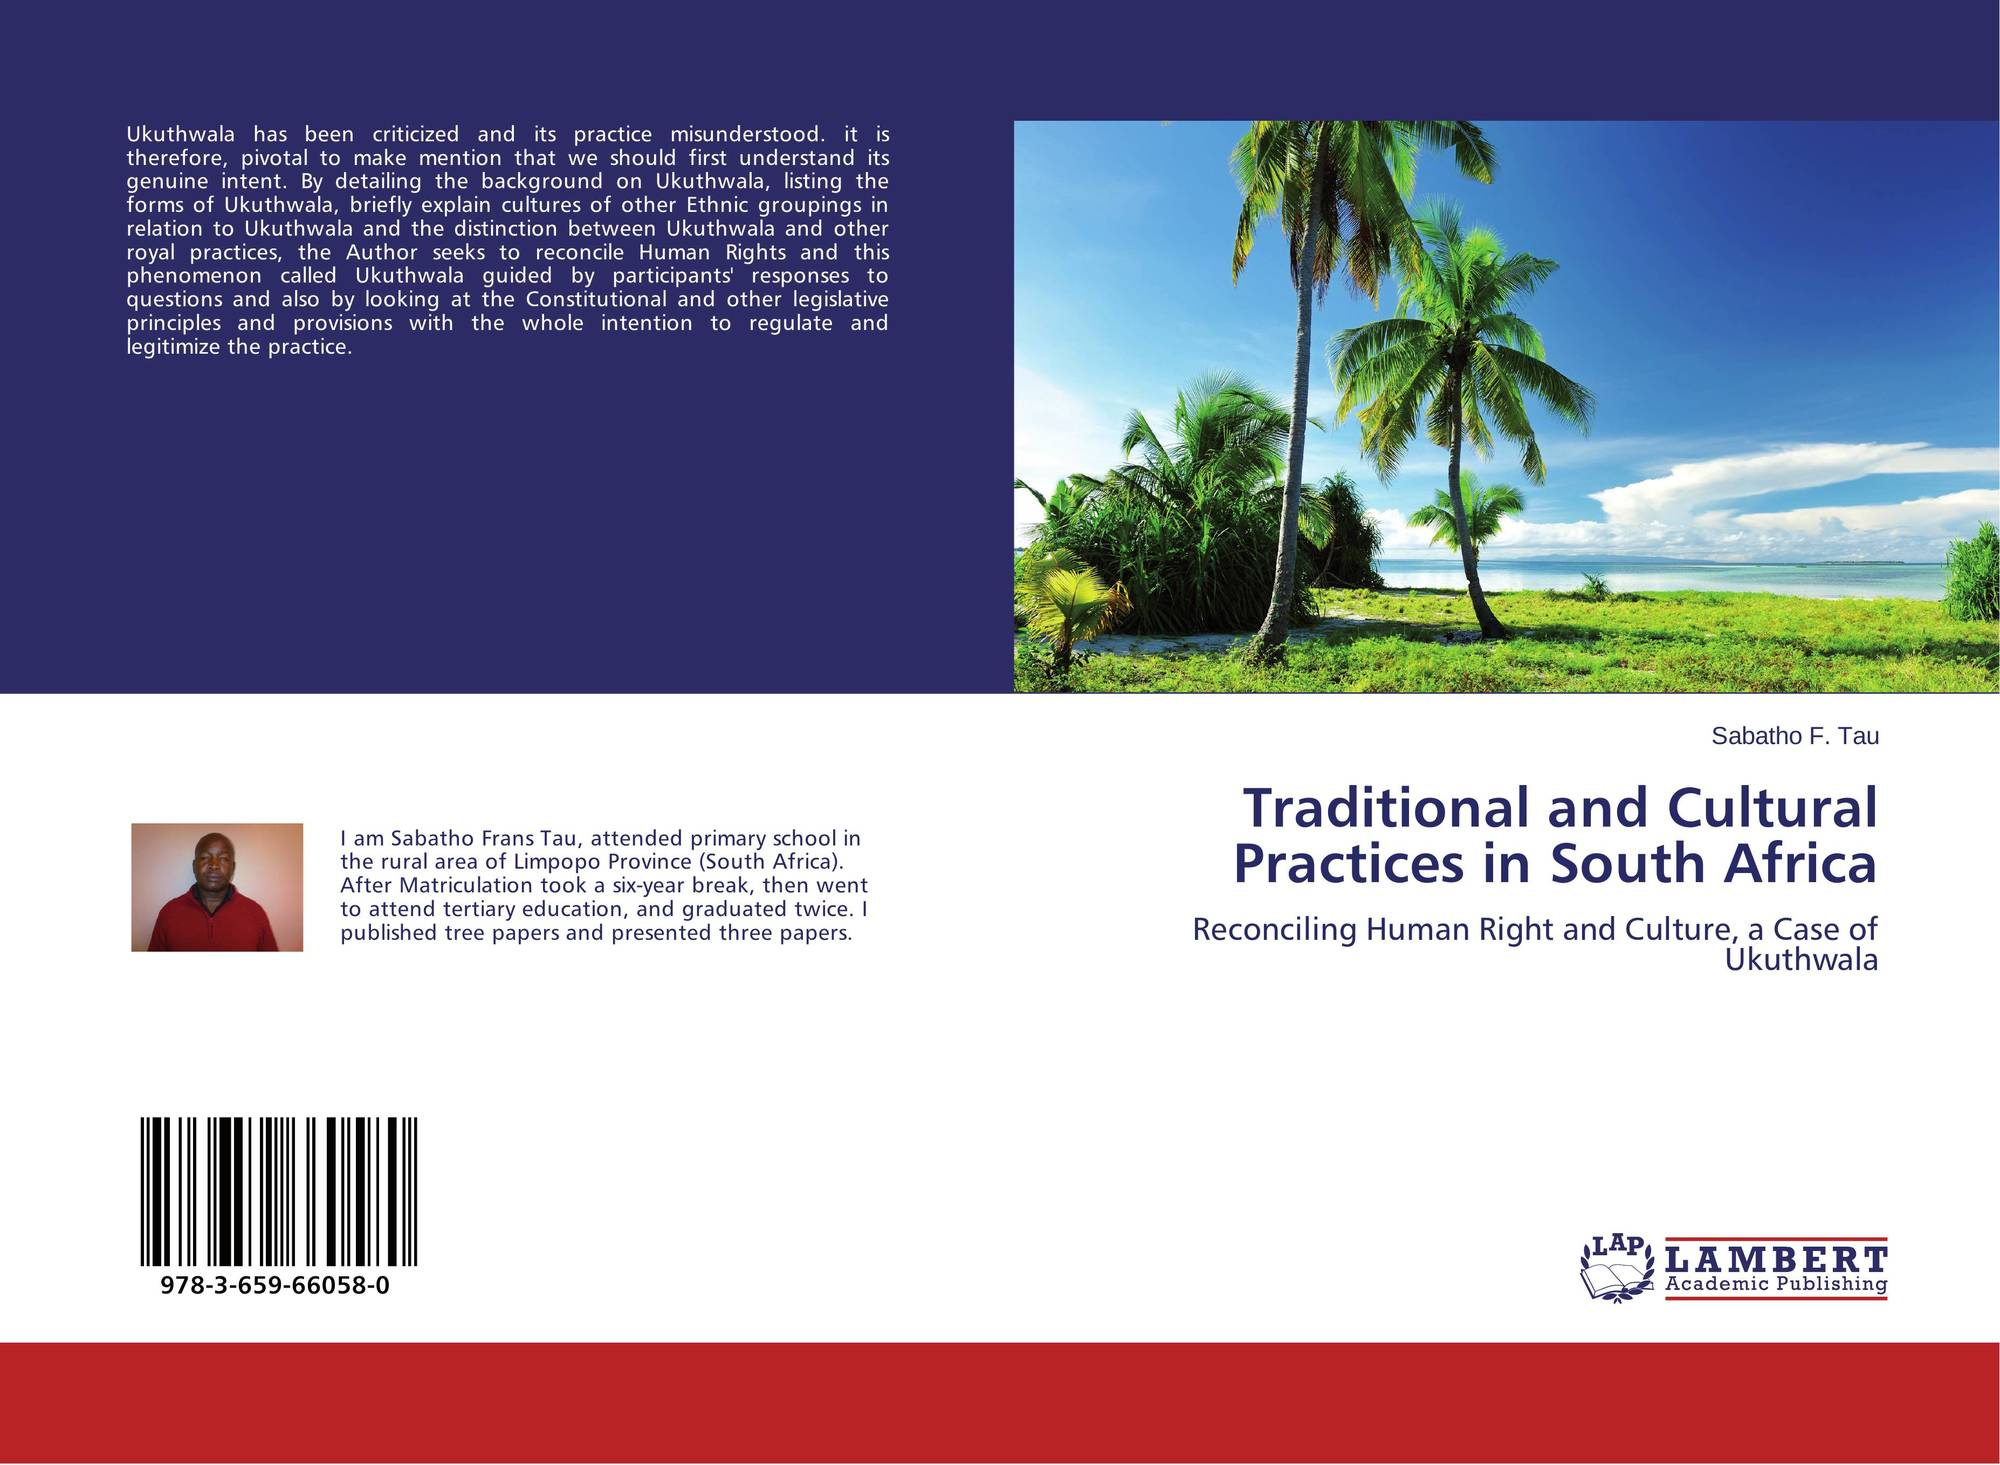 examing the cultural practice of ukuthwala The constitution protects the right to culture what practices are properly included in this custom - goes back as far as the practice of ukuthwala itself from the historian's perspective when ukuthwala is stealing a child share this article with a friend your name: email.